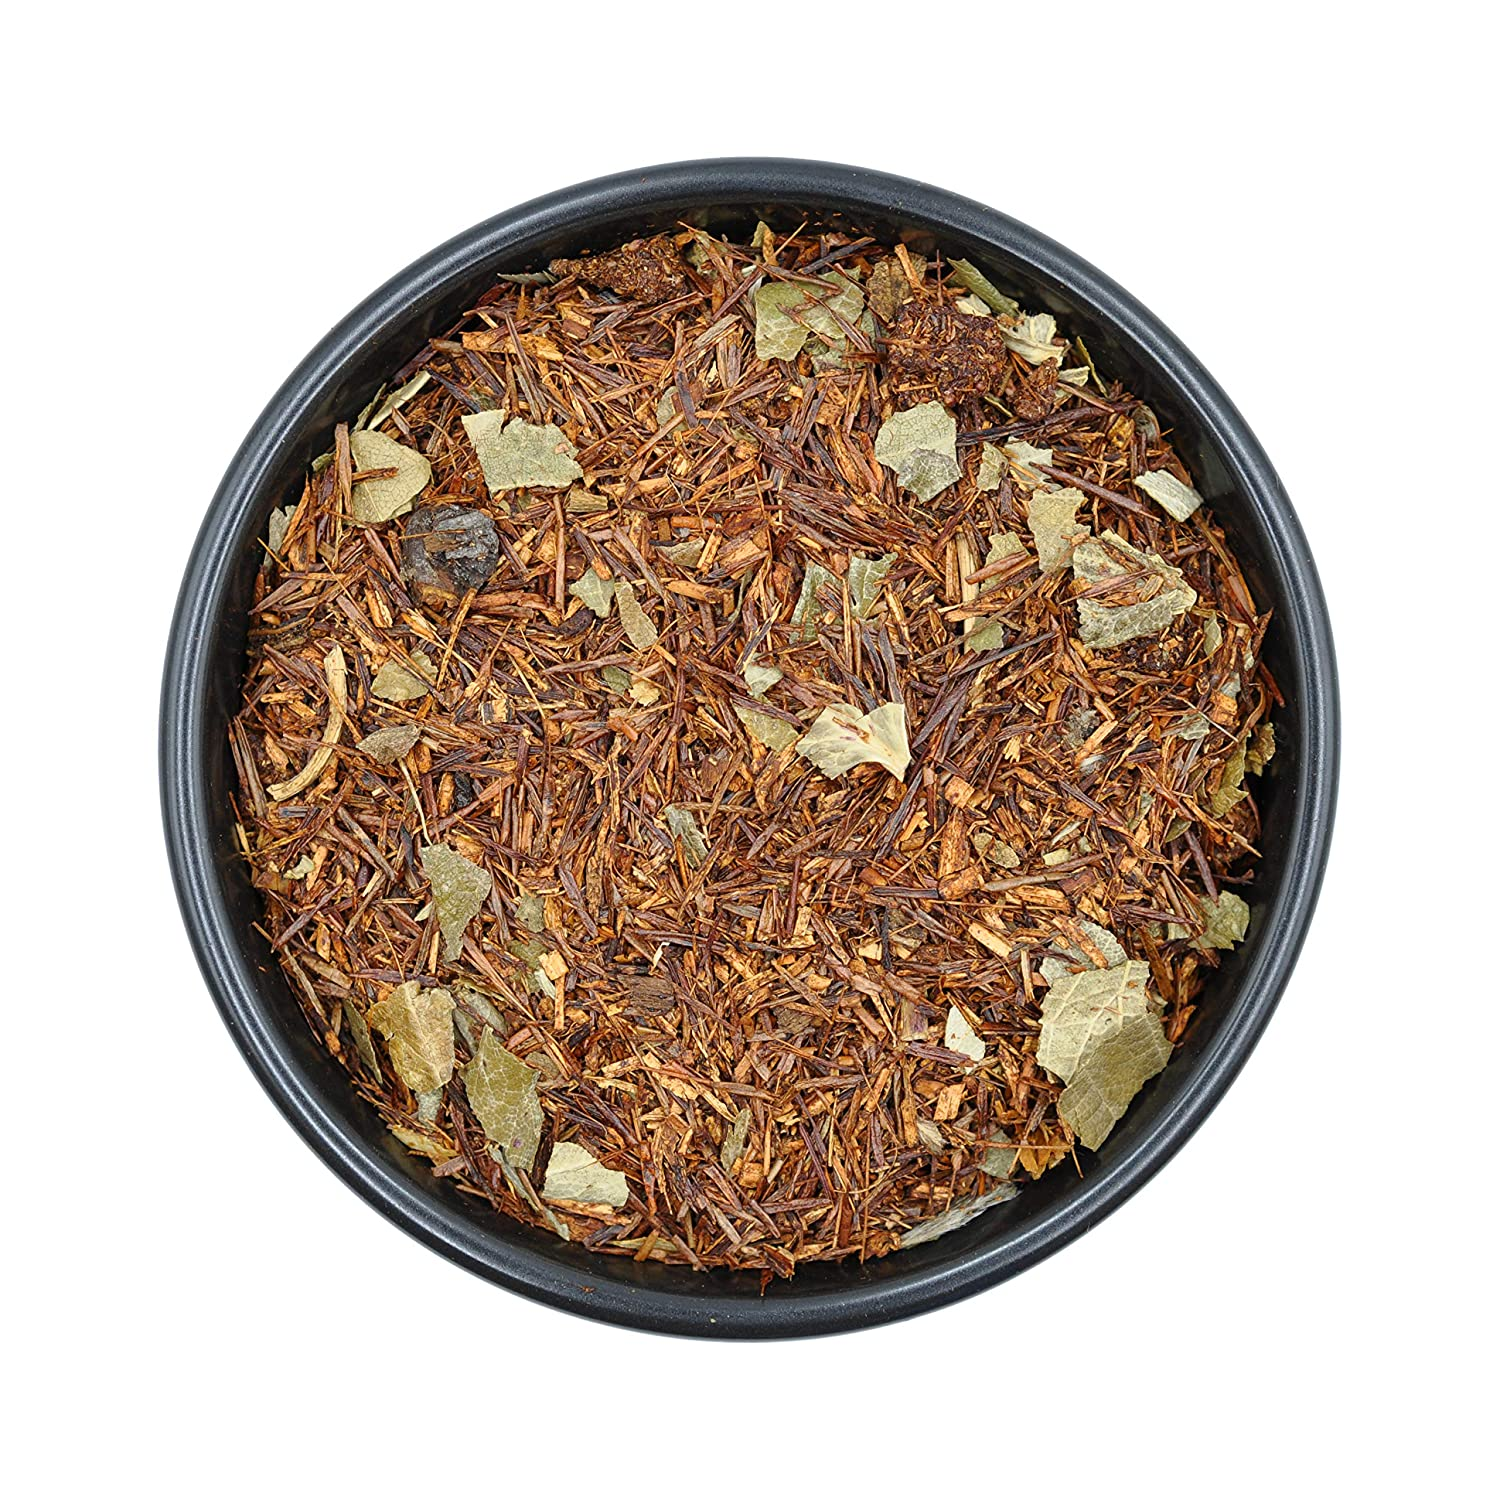 Rooibos Tea with Regular discount Herbs Fruits T Naturally Flavored Spices Elegant and